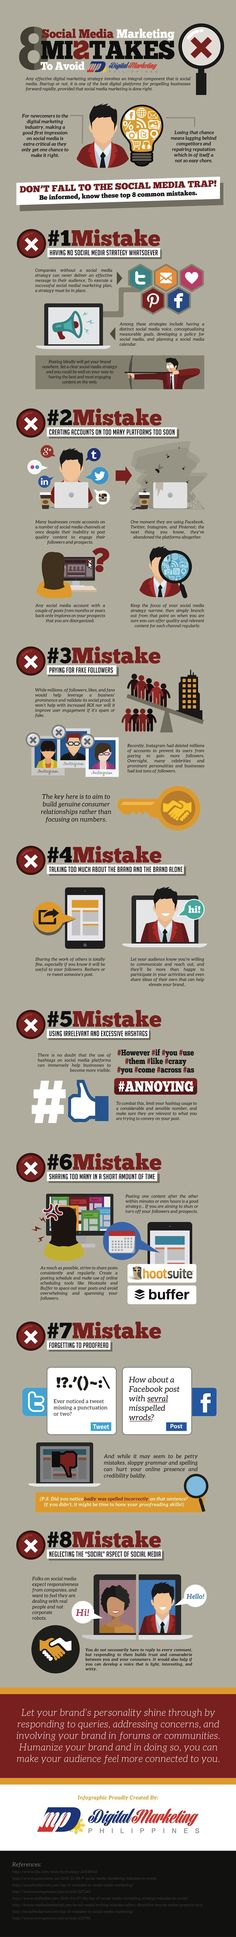 Social Media Marketing Mistakes #socialsuperstars